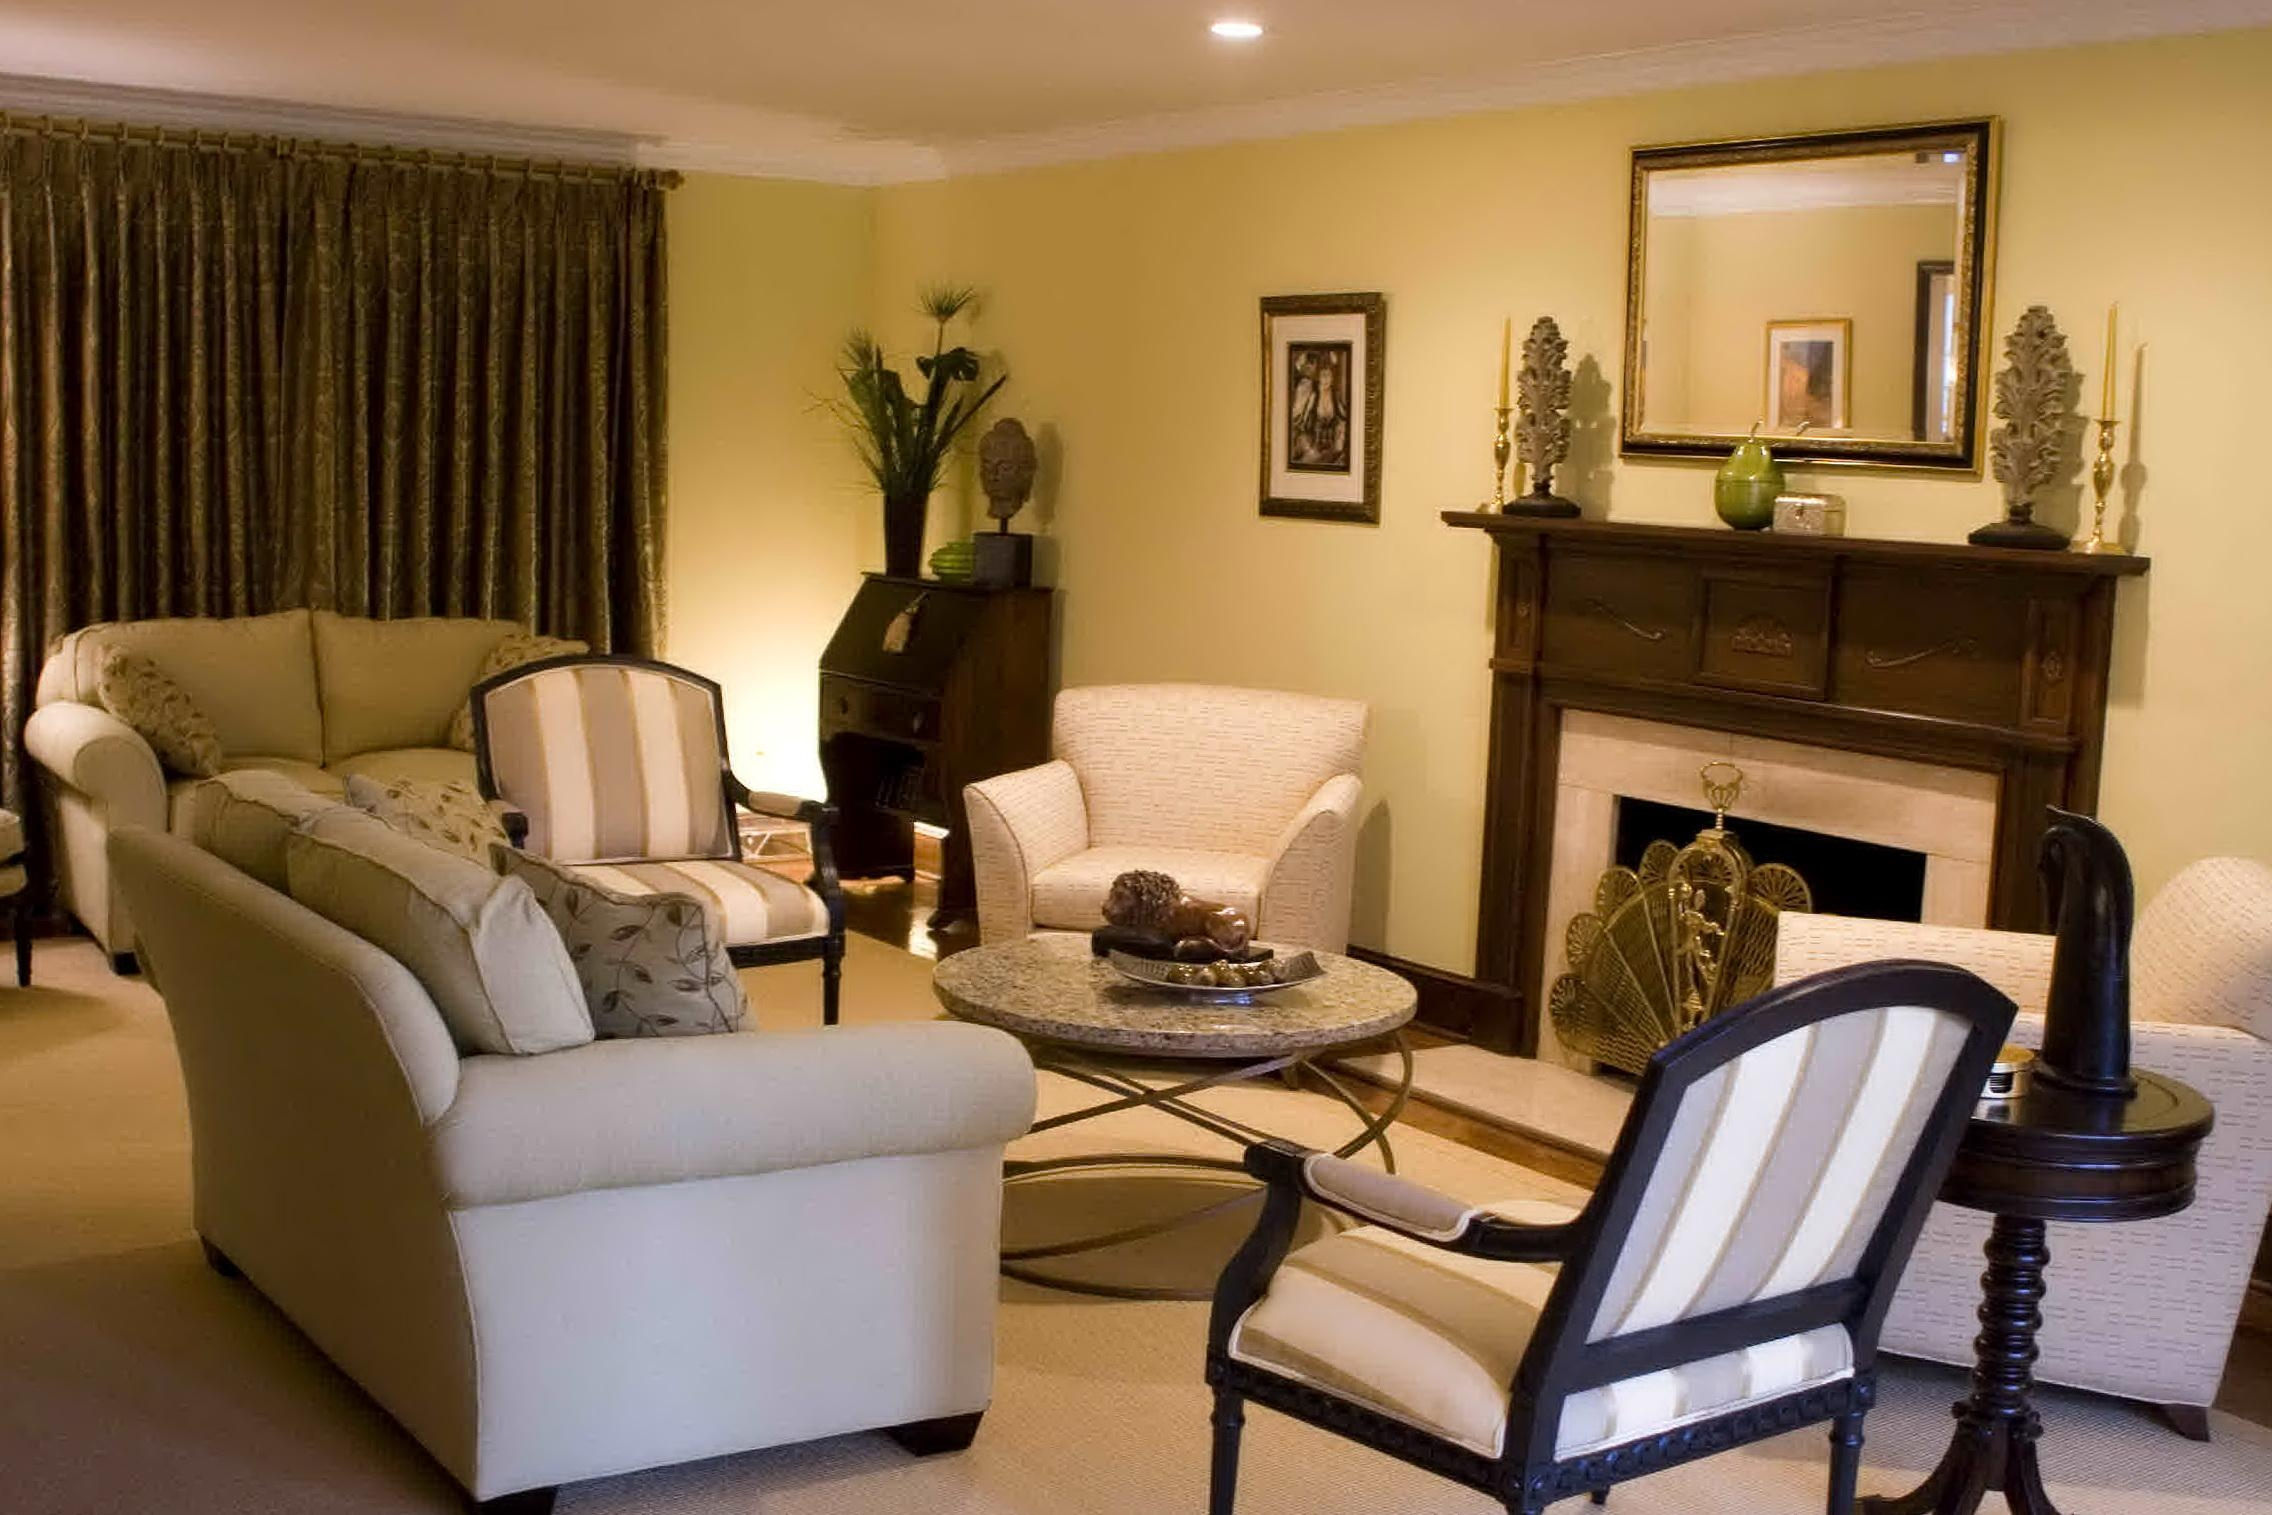 Mirror Above Sofa With Inspiration Hd Photos 39468 | Kengire In Mirror Above Sofas (View 17 of 20)